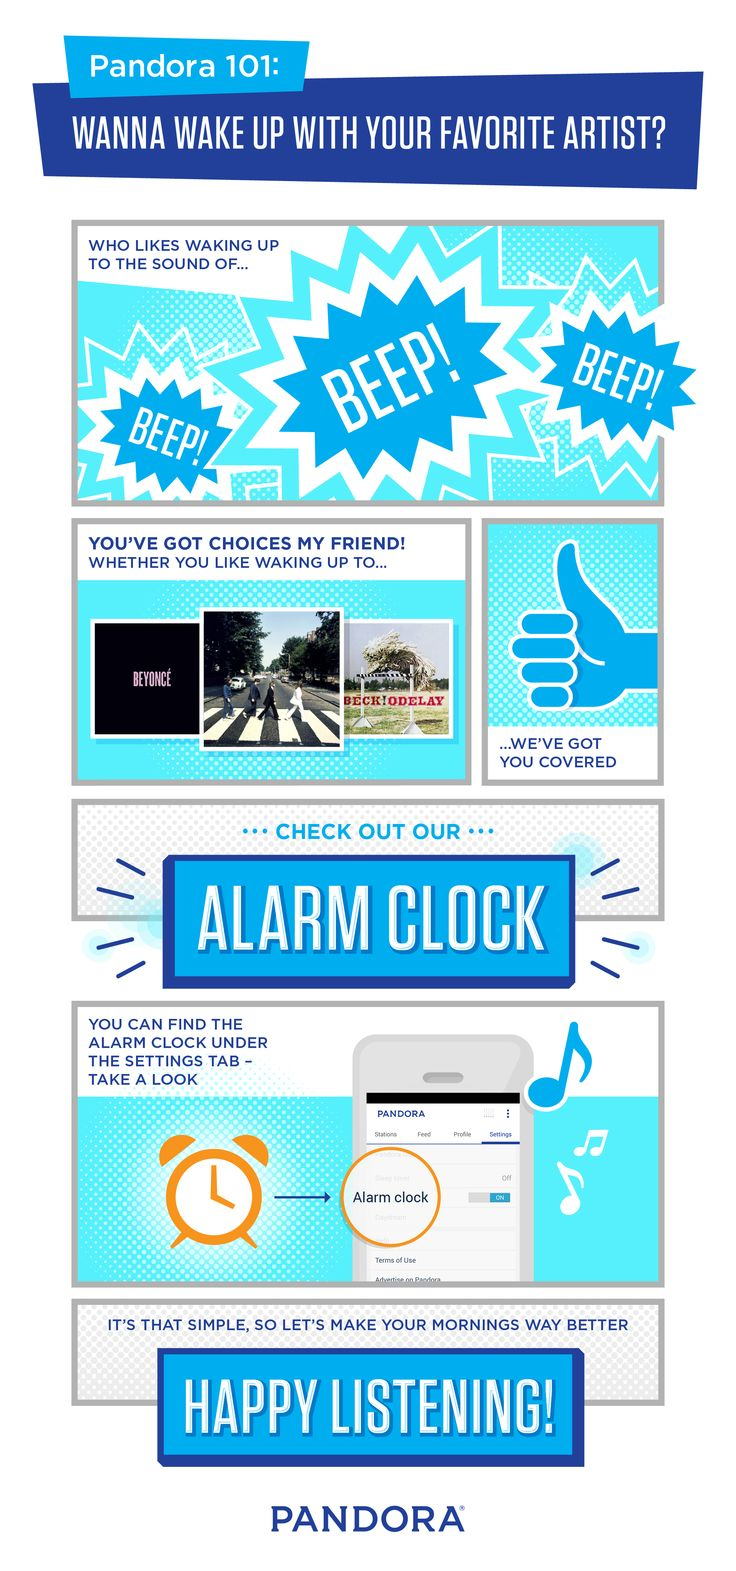 Let's make you mornings way better with the Alarm Clock from Pandora. Who doesn't want to wake up to their favorite artist?